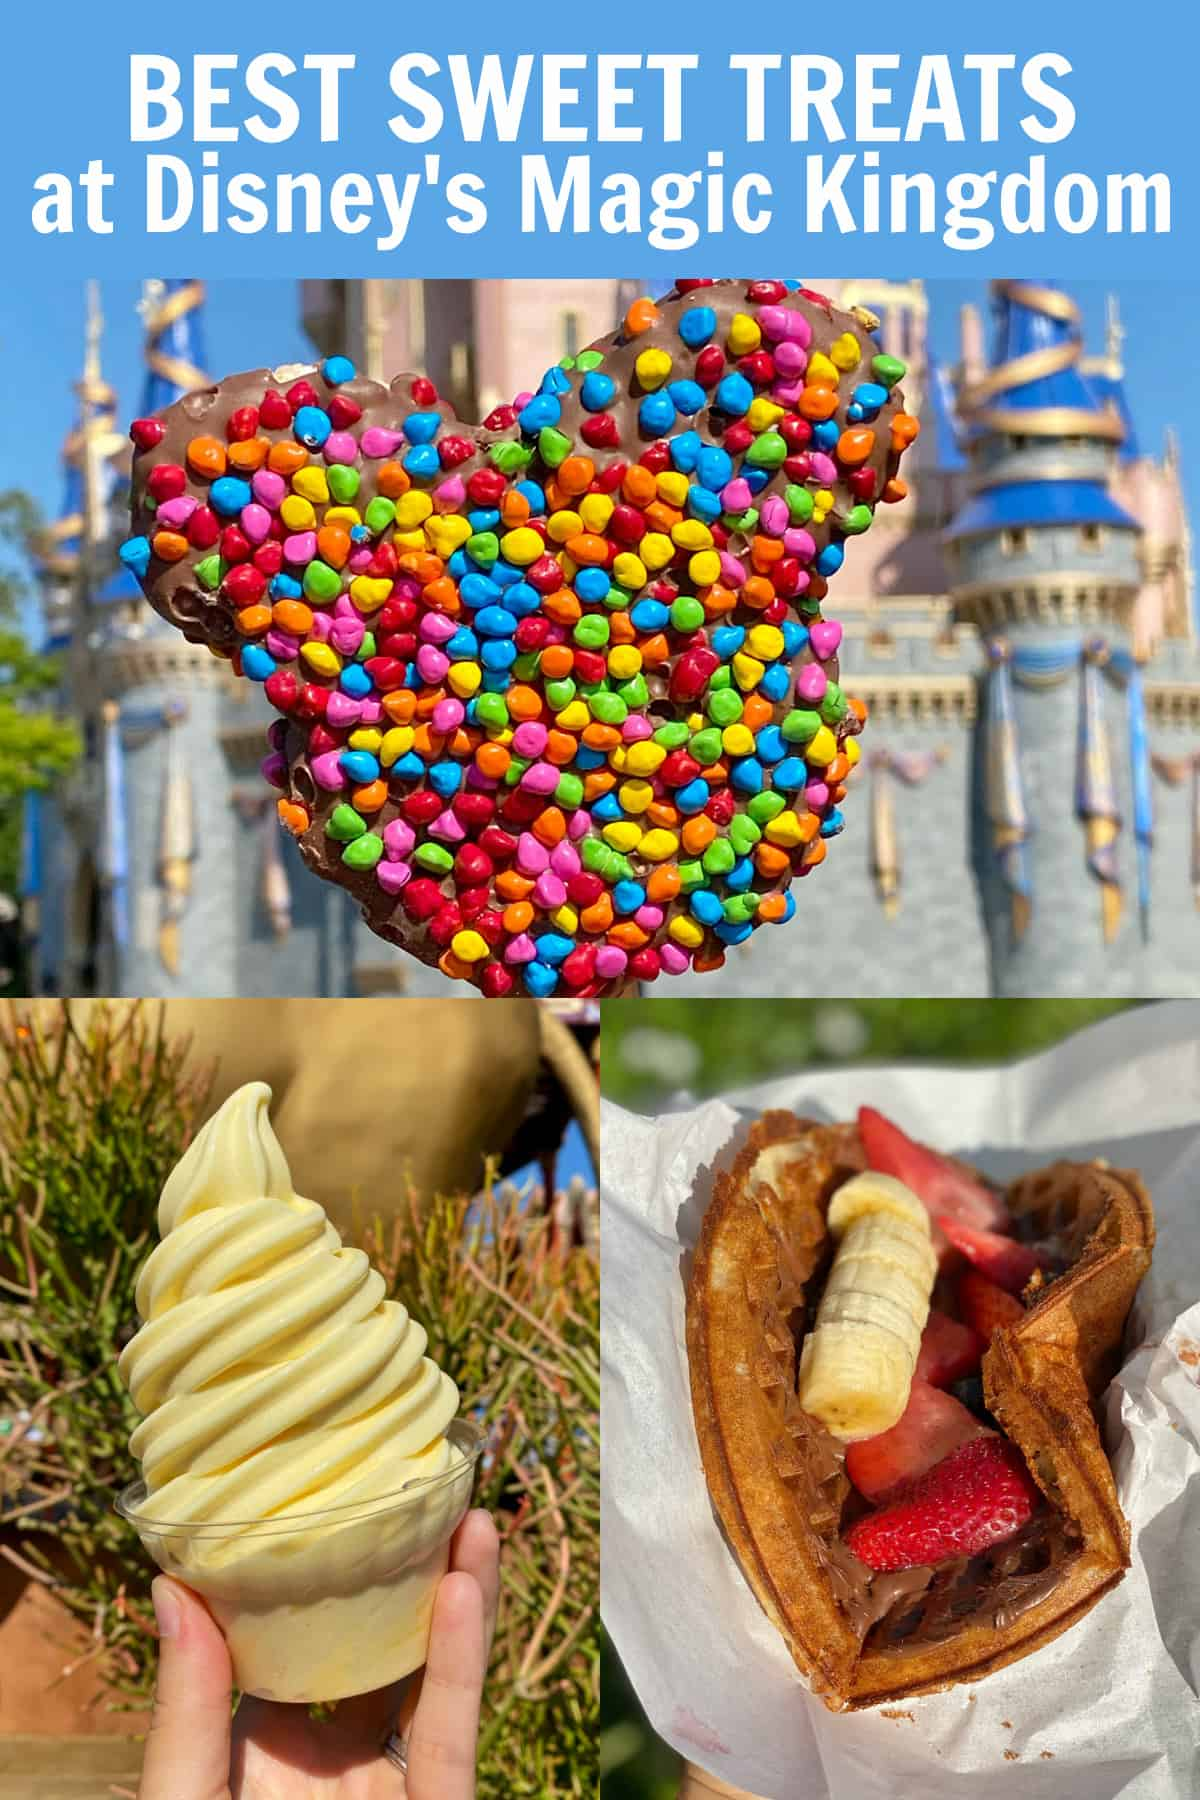 mickey rice krispie treat, dole whip and nutella waffle